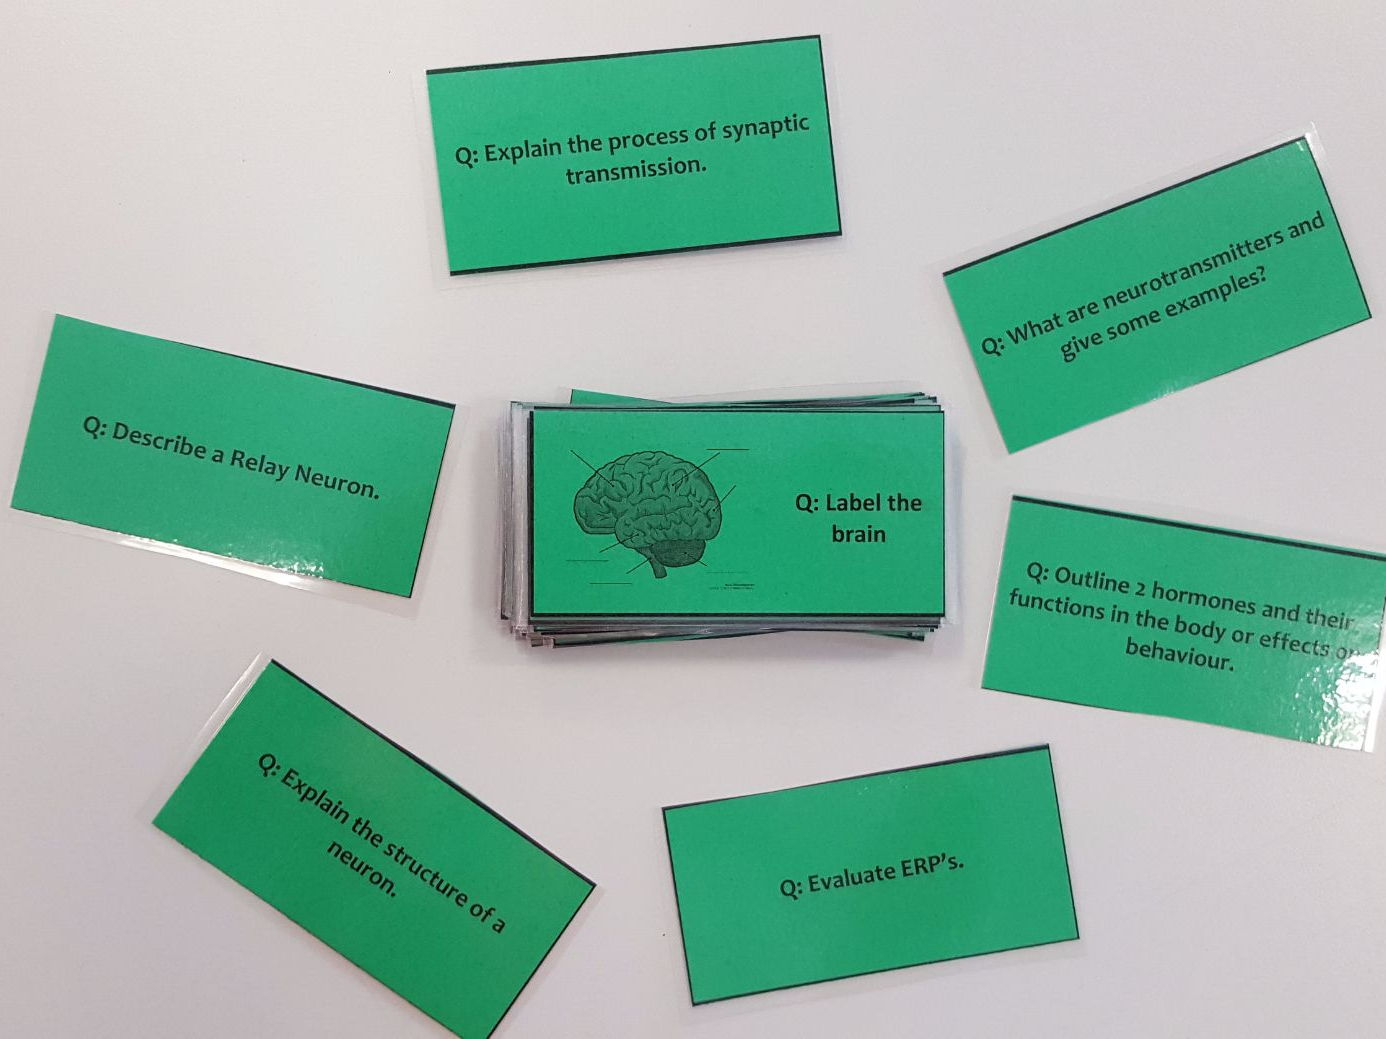 Paper 2 AQA Psychology REVISION CARDS (Biopsychology, Research Methods, Approaches)